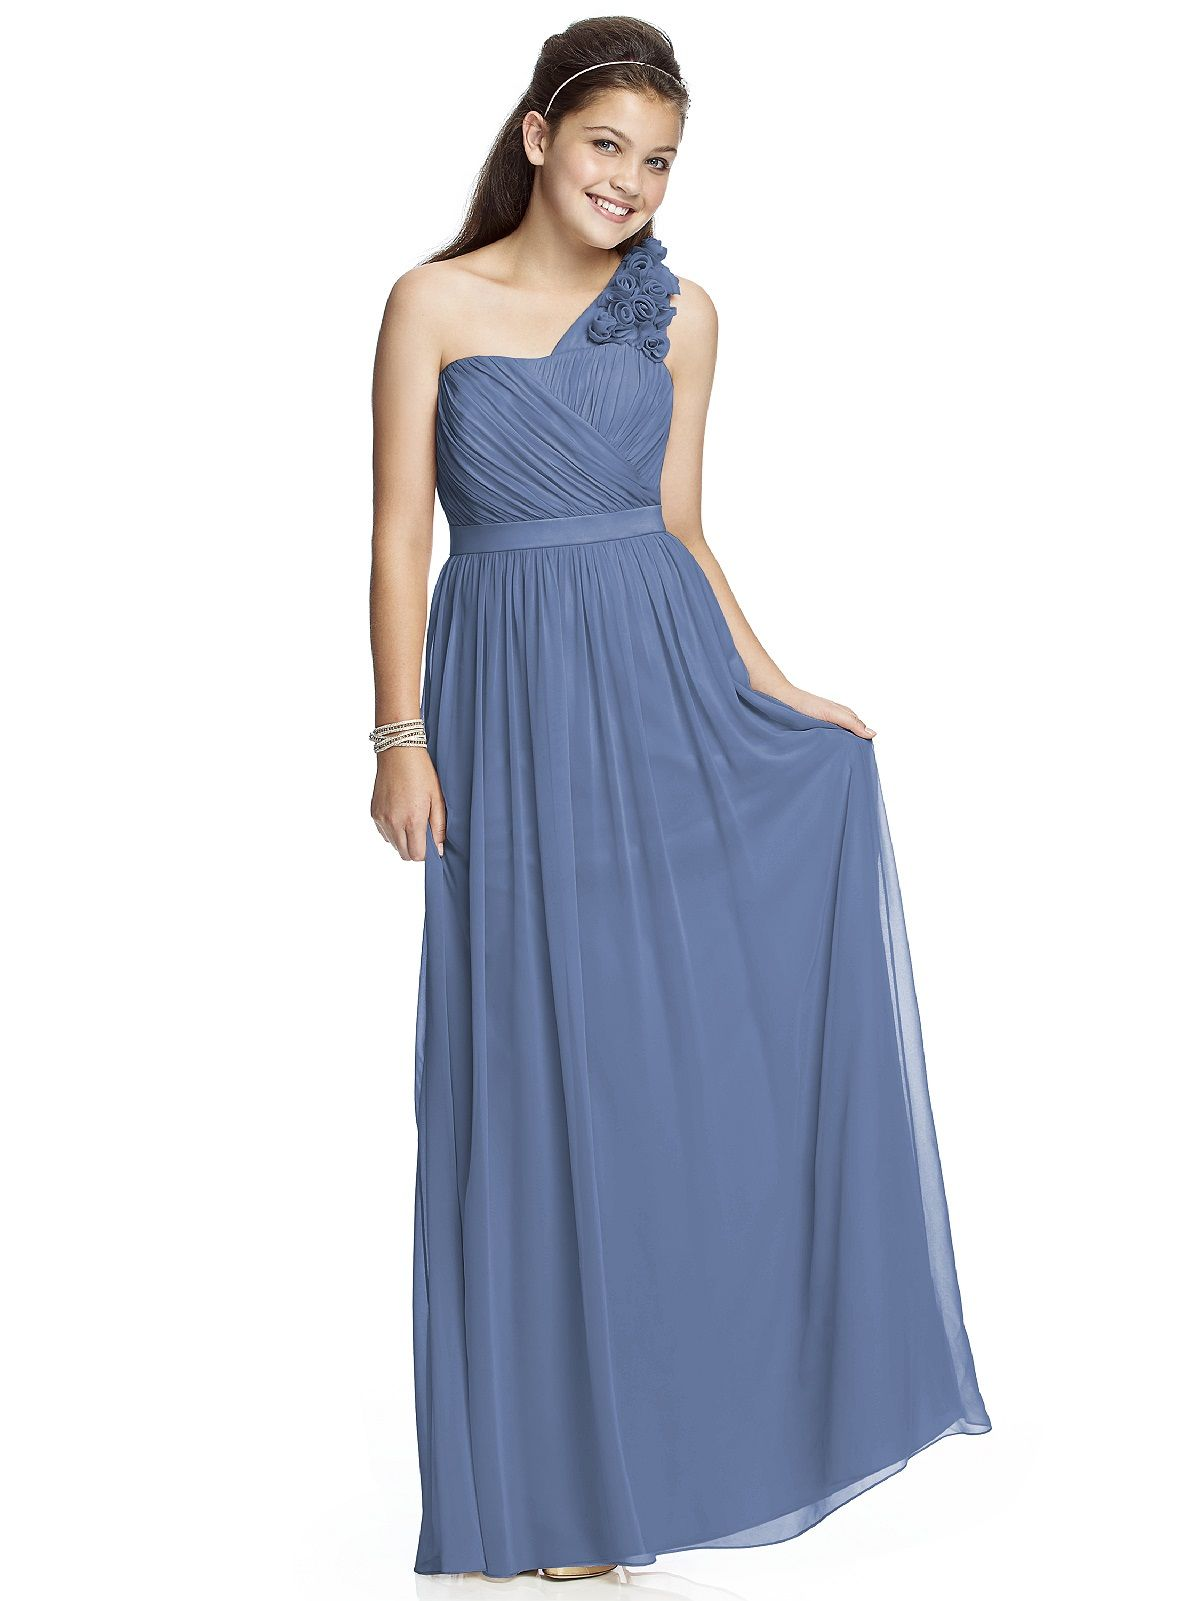 Junior bridesmaid dress jr526 httpdessydressesjunior junior version of style full length one shoulder lux chiffon dress with handworked flower detail at shoulder ombrellifo Choice Image